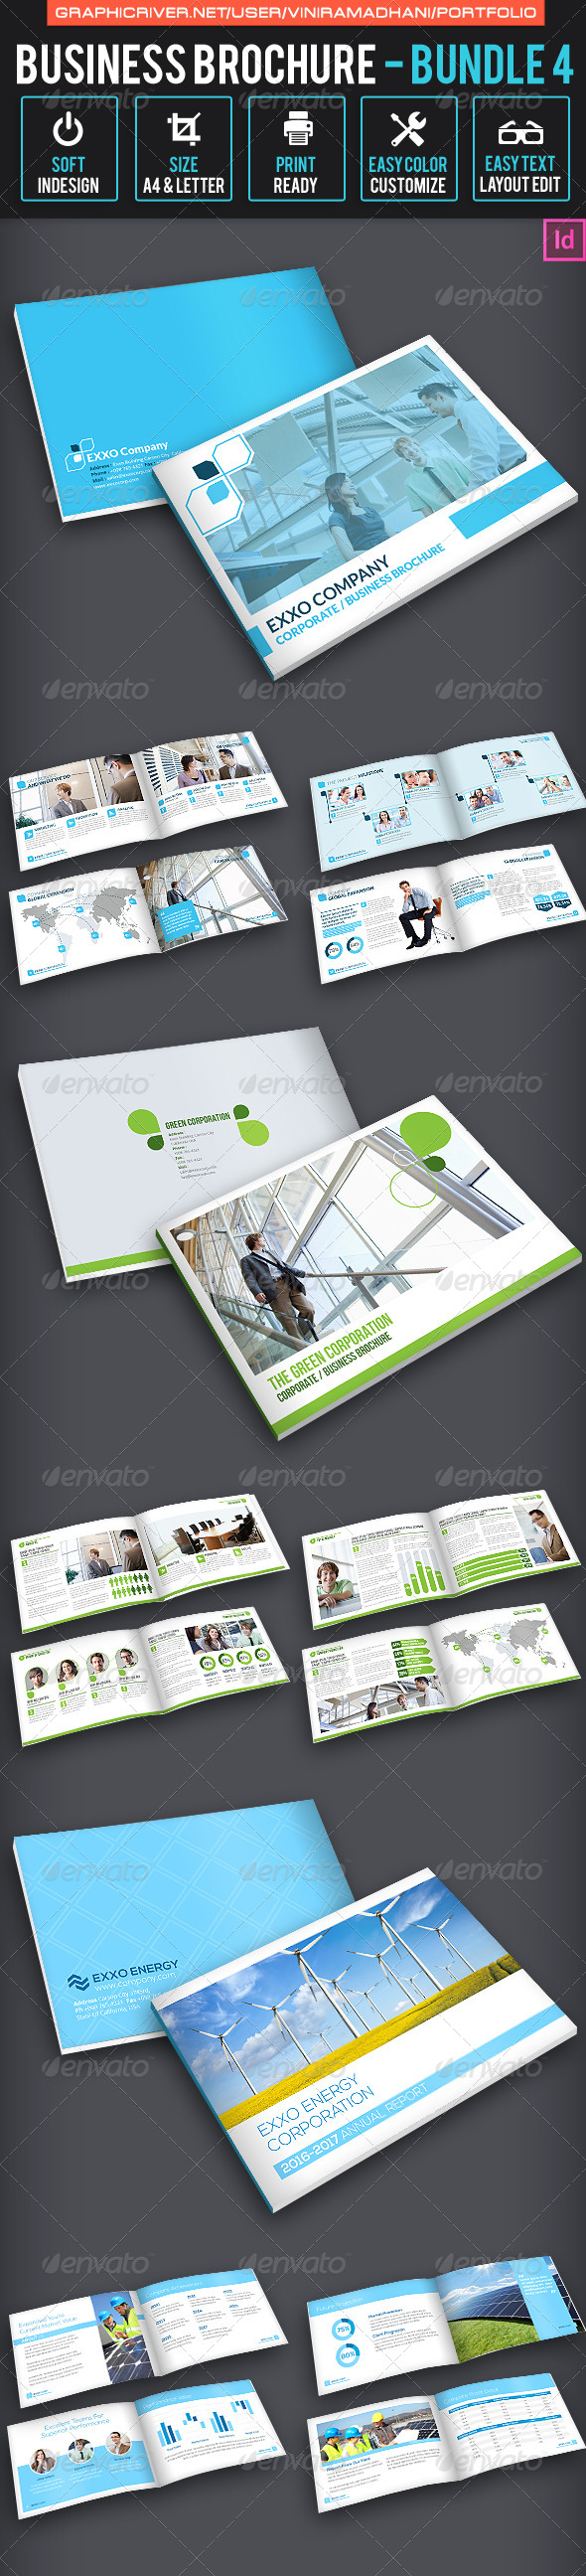 GraphicRiver Business Brochure Bundle 4 7324615